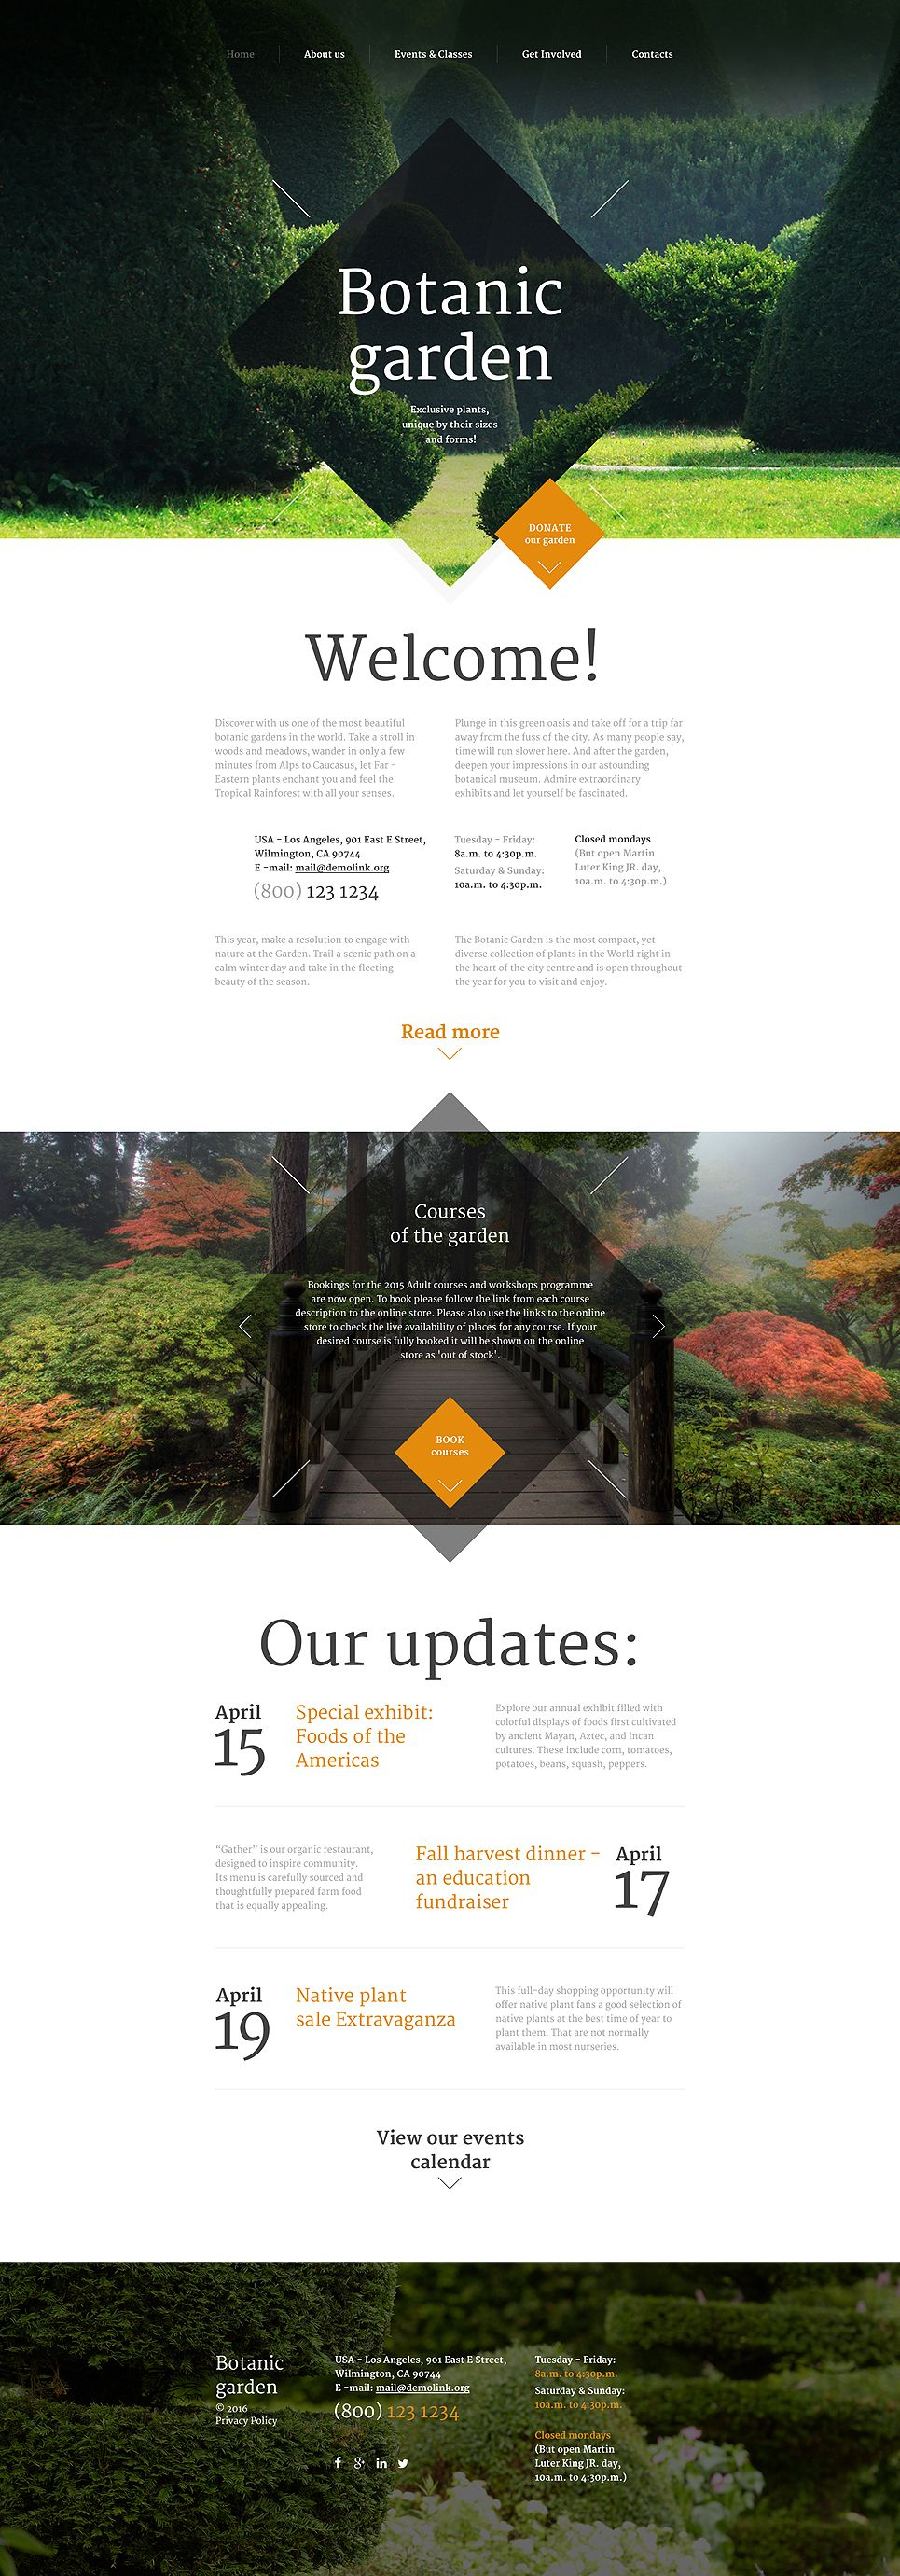 Garden Design Website Ideas Botanic Garden Website Template  Landscape Designs Landscaping .